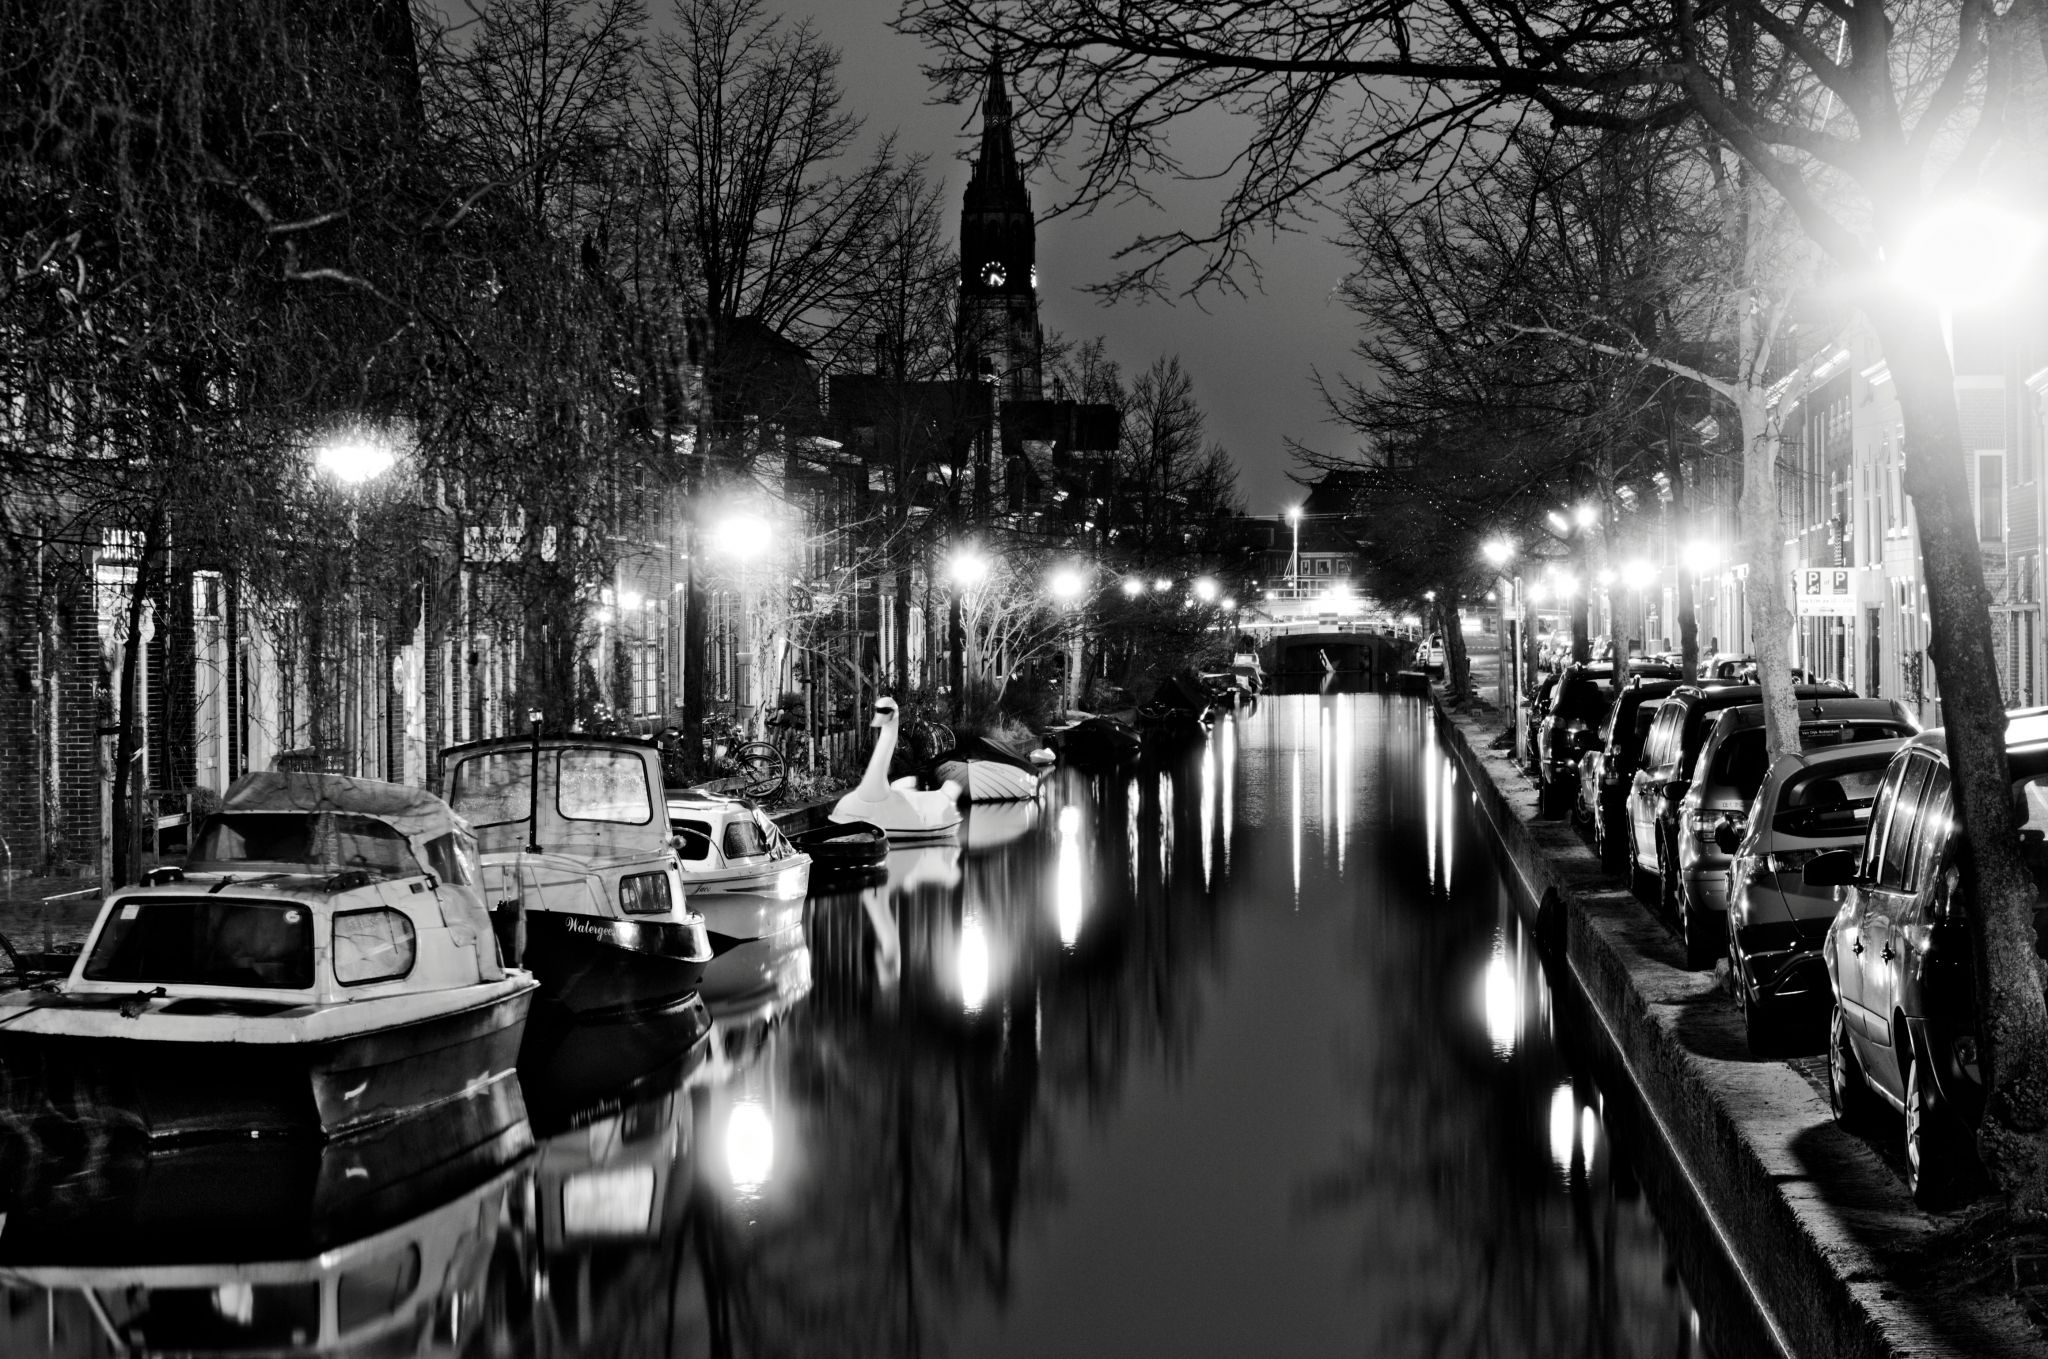 Delft Canals, Netherlands